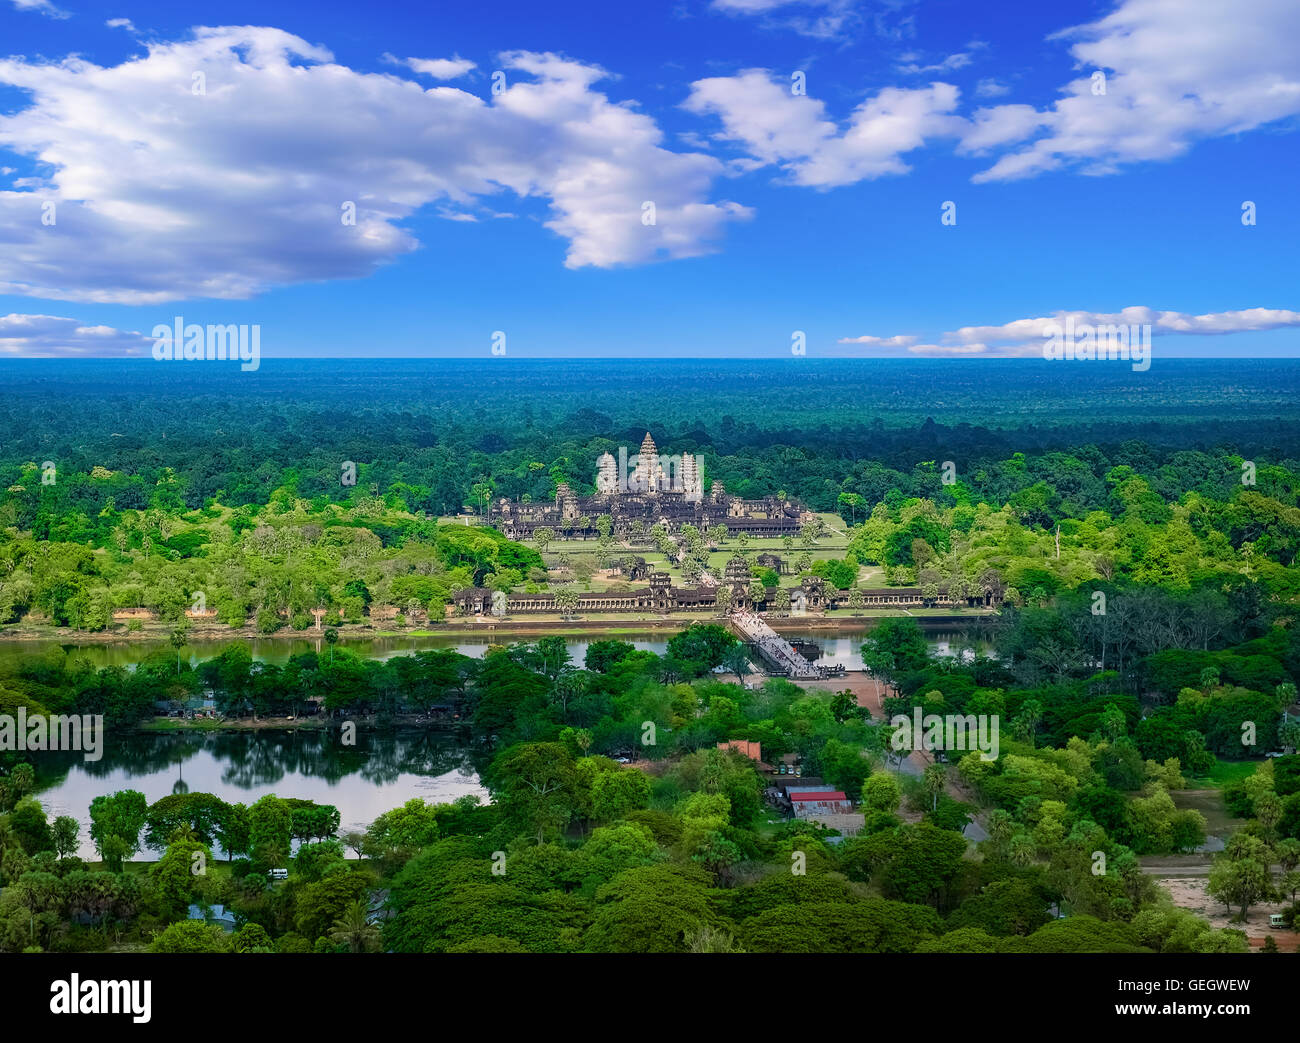 Aerial view of Angkor Wat Temple, Siem Reap, Cambodia, Southeast Asia. UNESCO World Heritage Site. - Stock Image